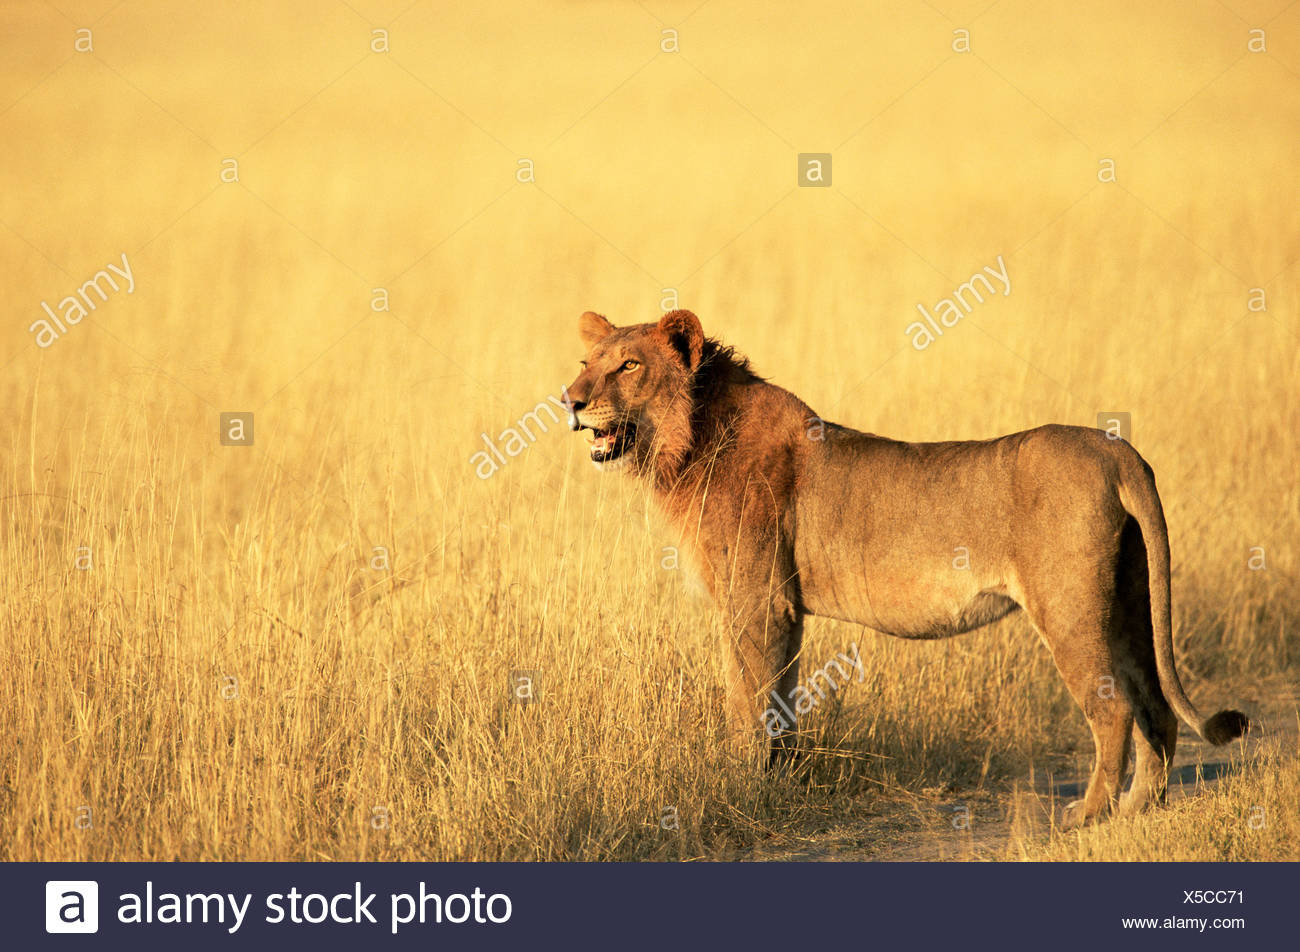 Lion d'Afrique Photo Stock